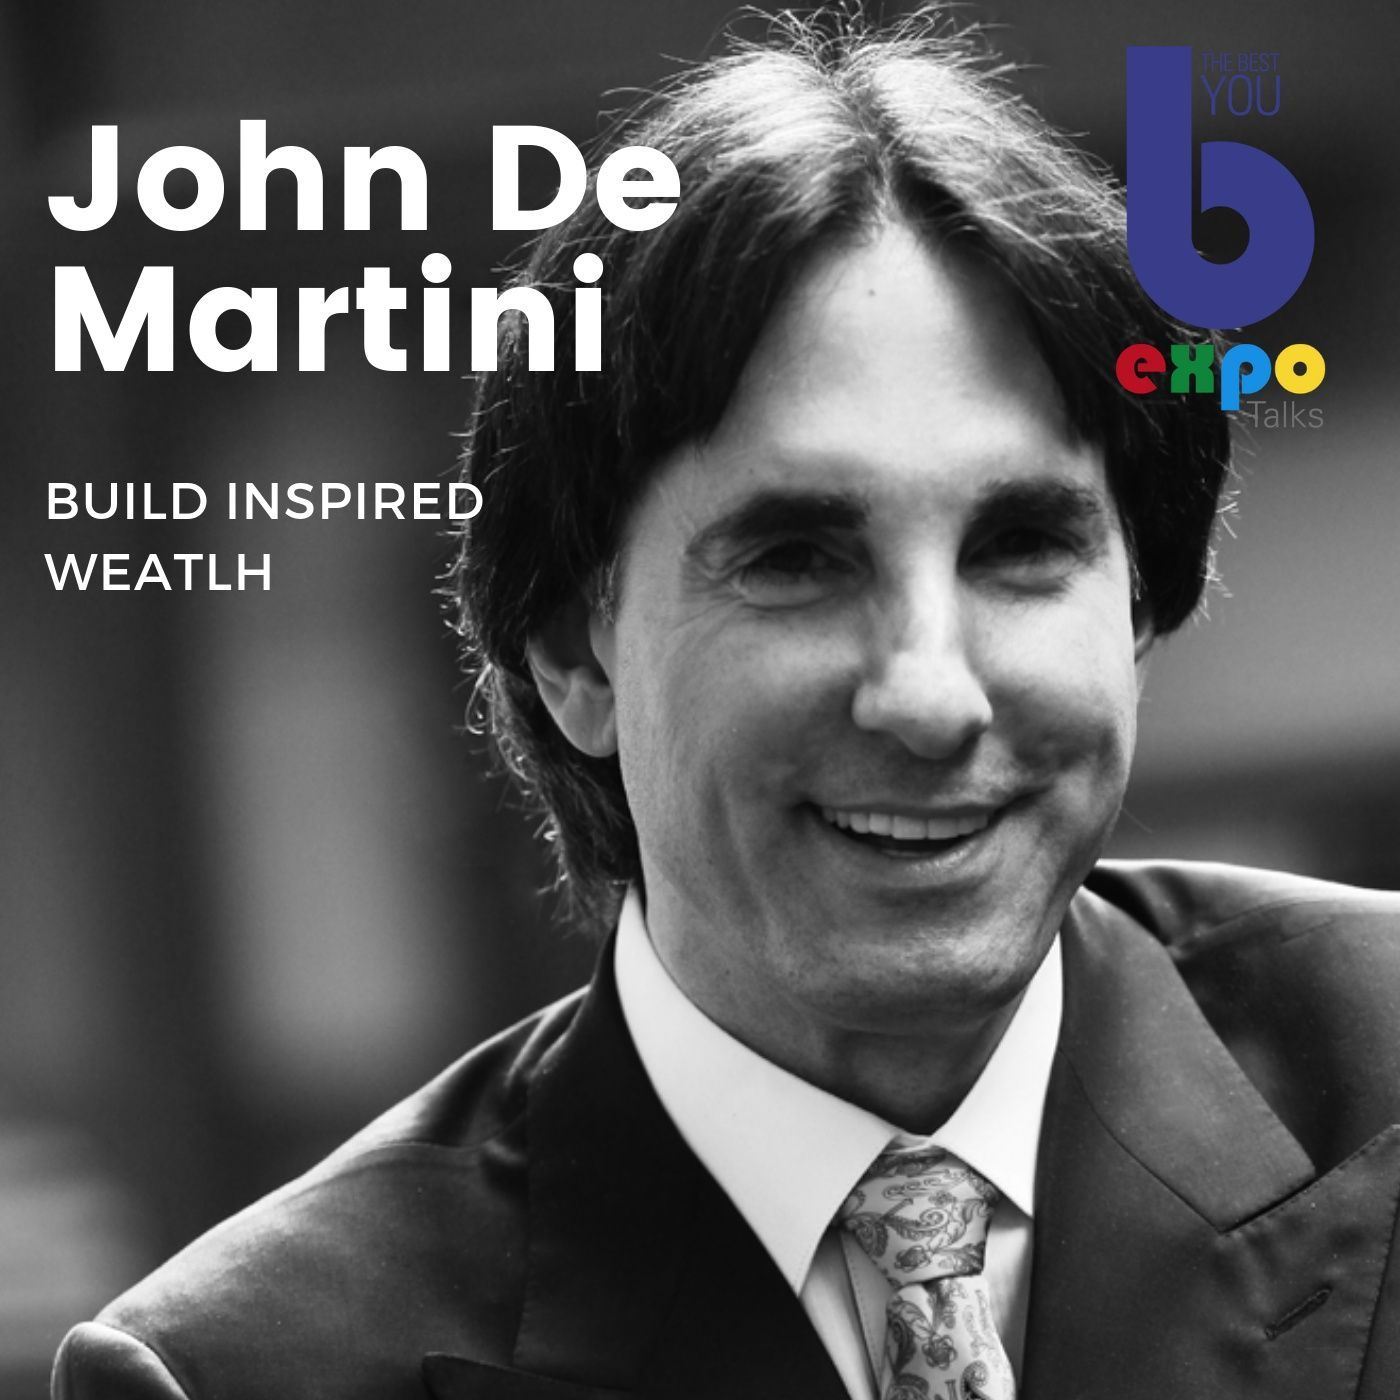 Listen to John Demartini at The Best You EXPO